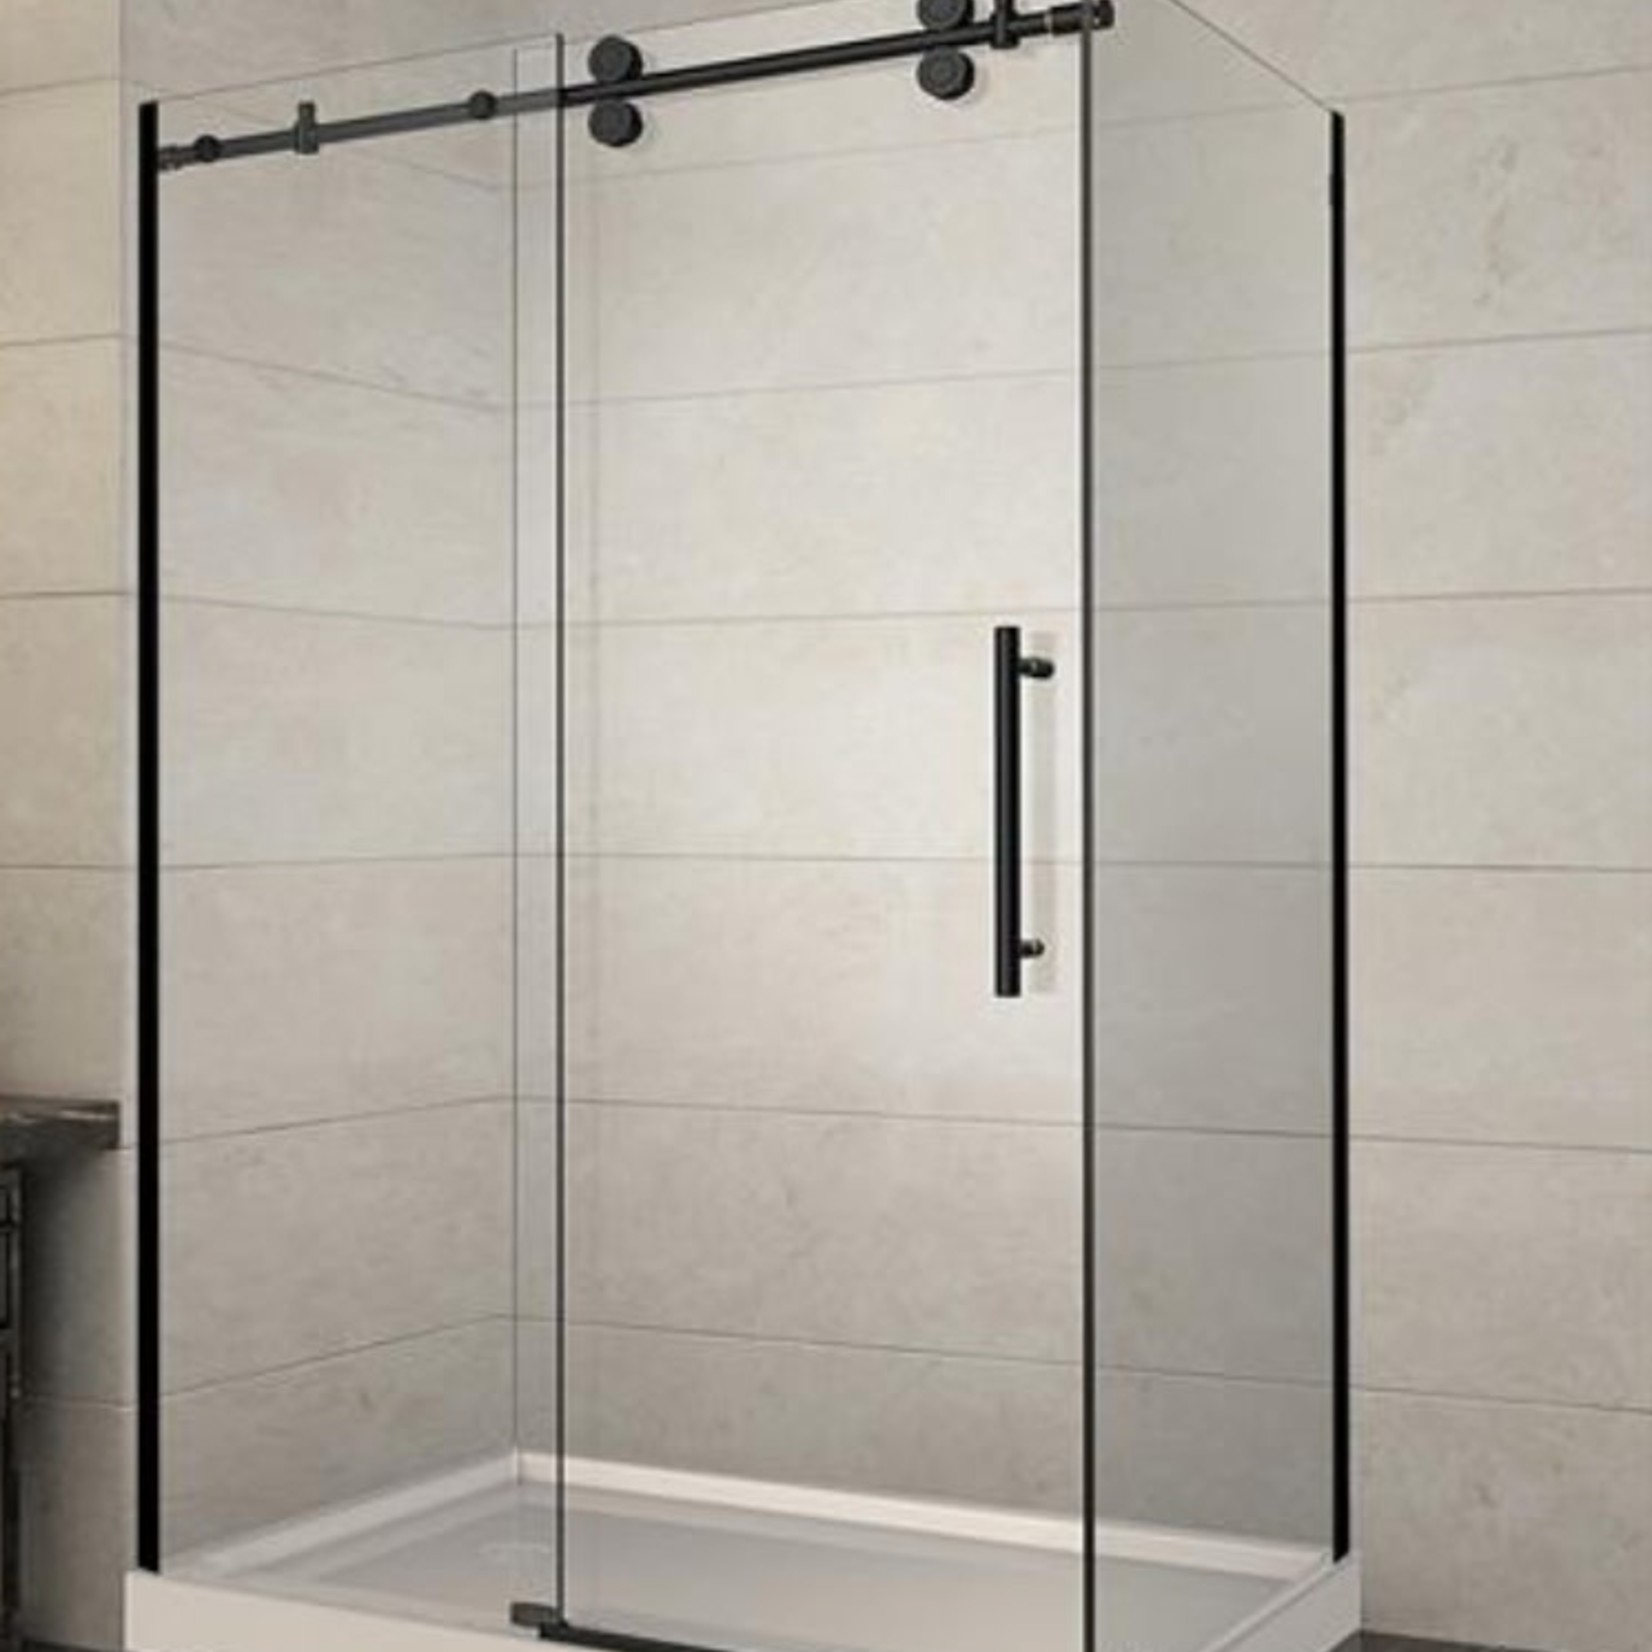 Luhö Reversible shower set 36x48 matt black Zirkon Luho series